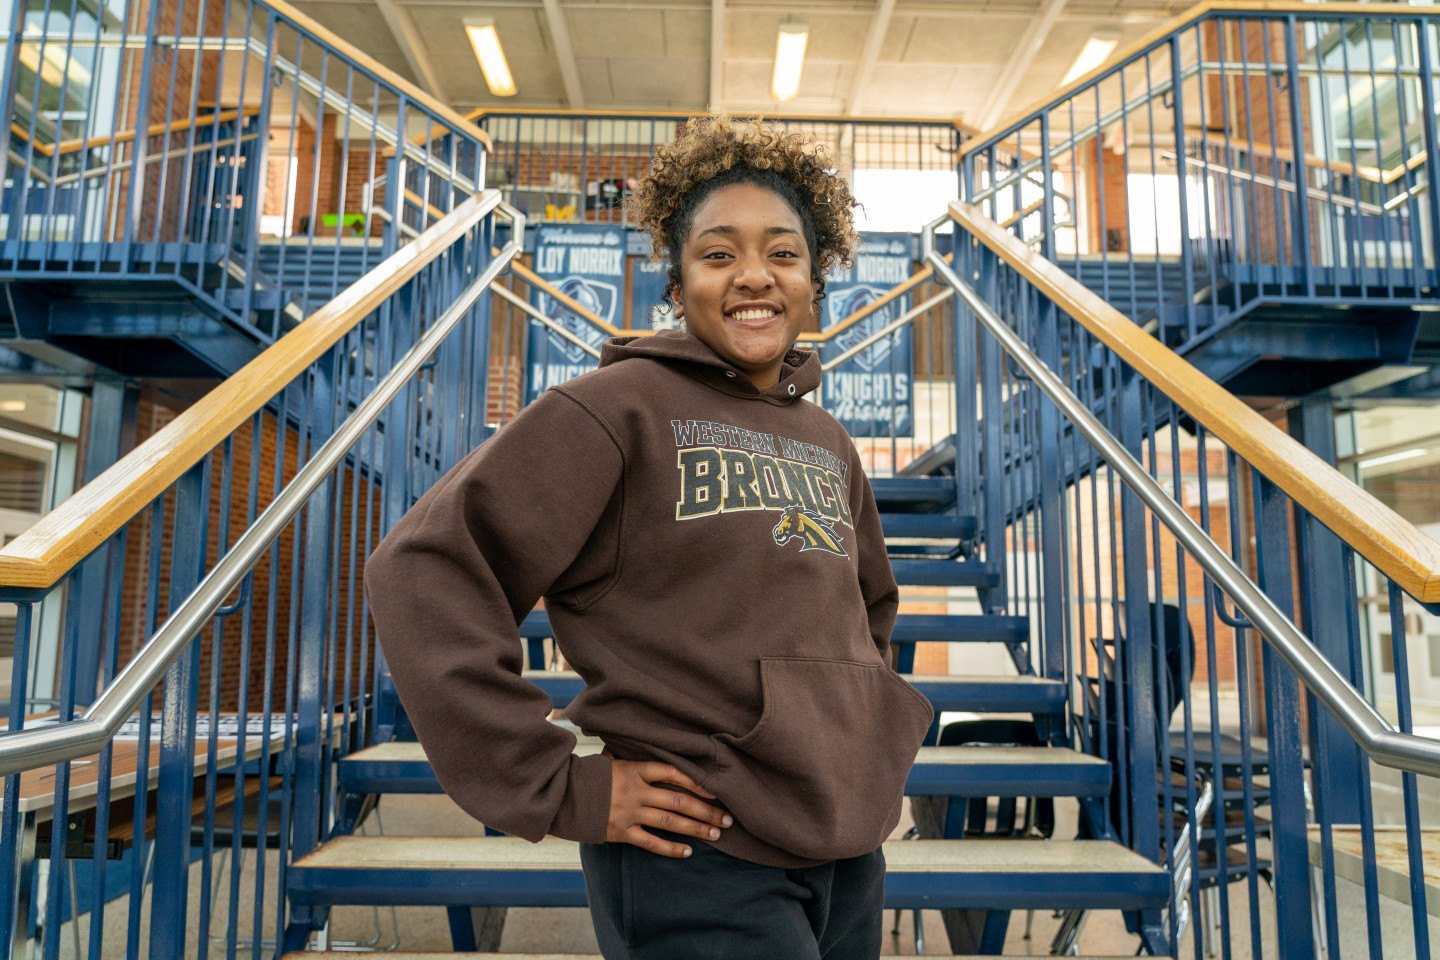 Sierra Ward stands at the bottom of a staircase.